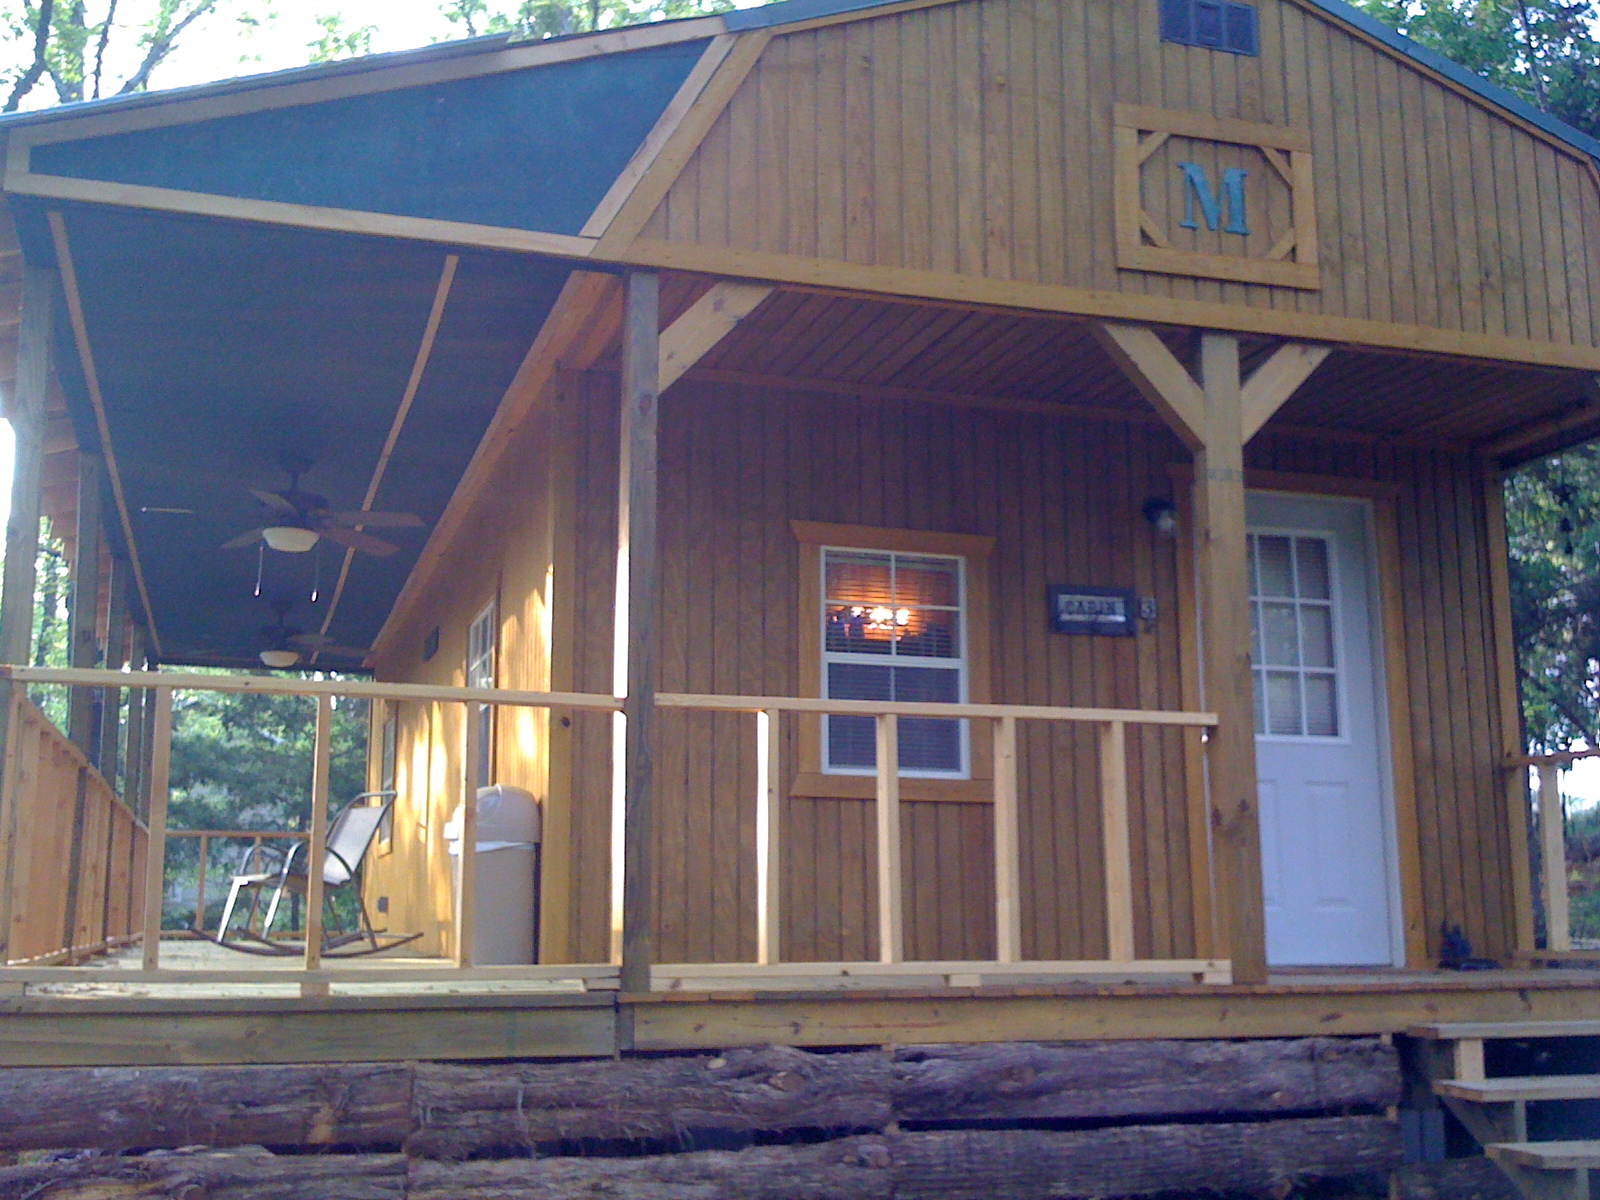 house relaxshacks tx for img rent prices com tiny francis in cabins texas housecabin cabin vacation austin jennifer